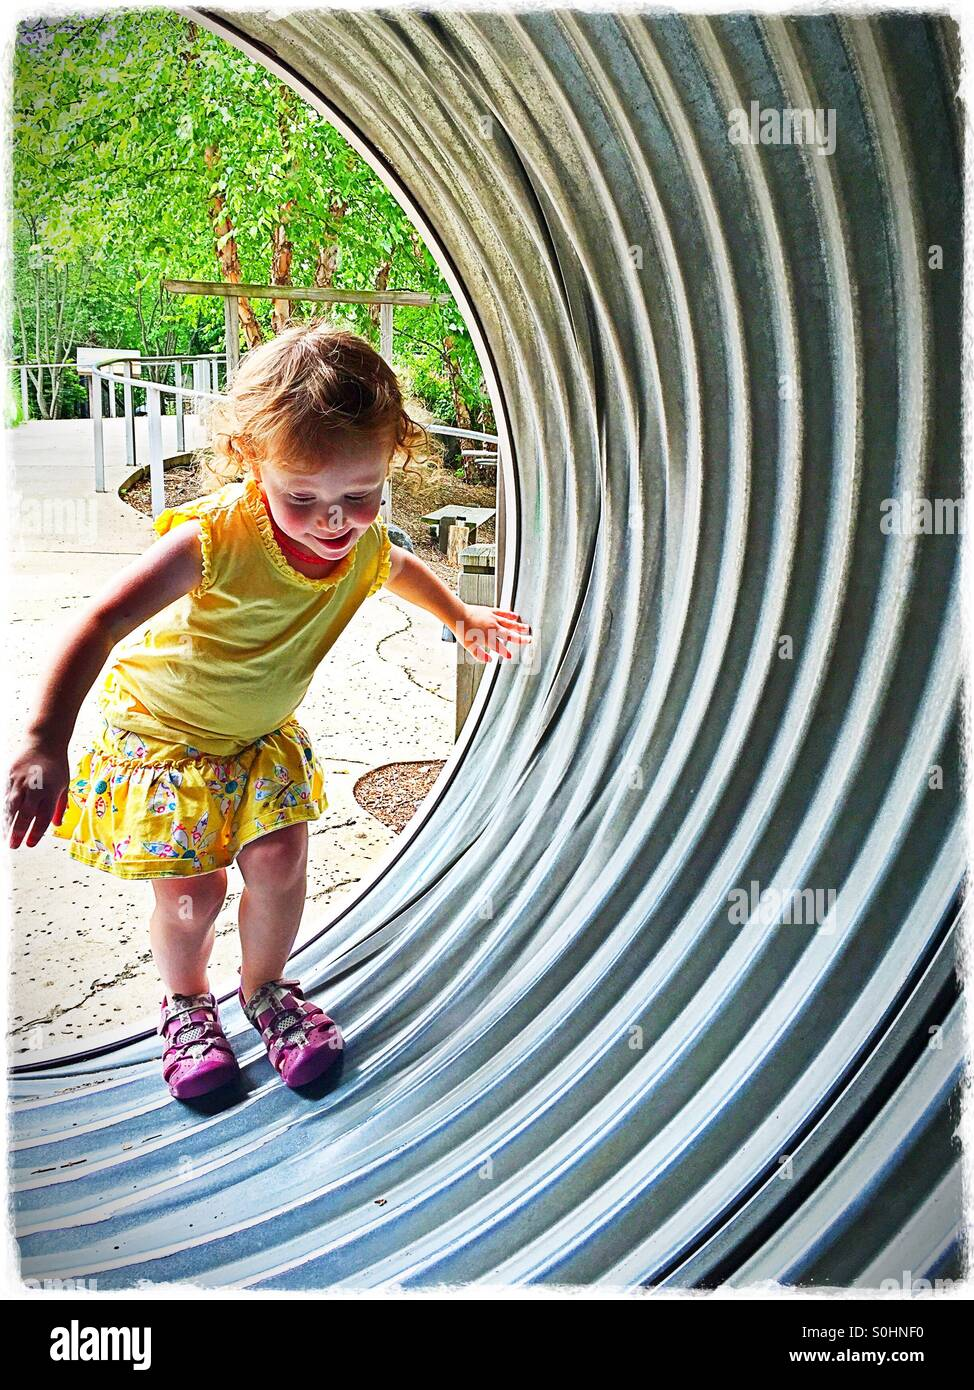 Toddler climbing into tunnel Stock Photo